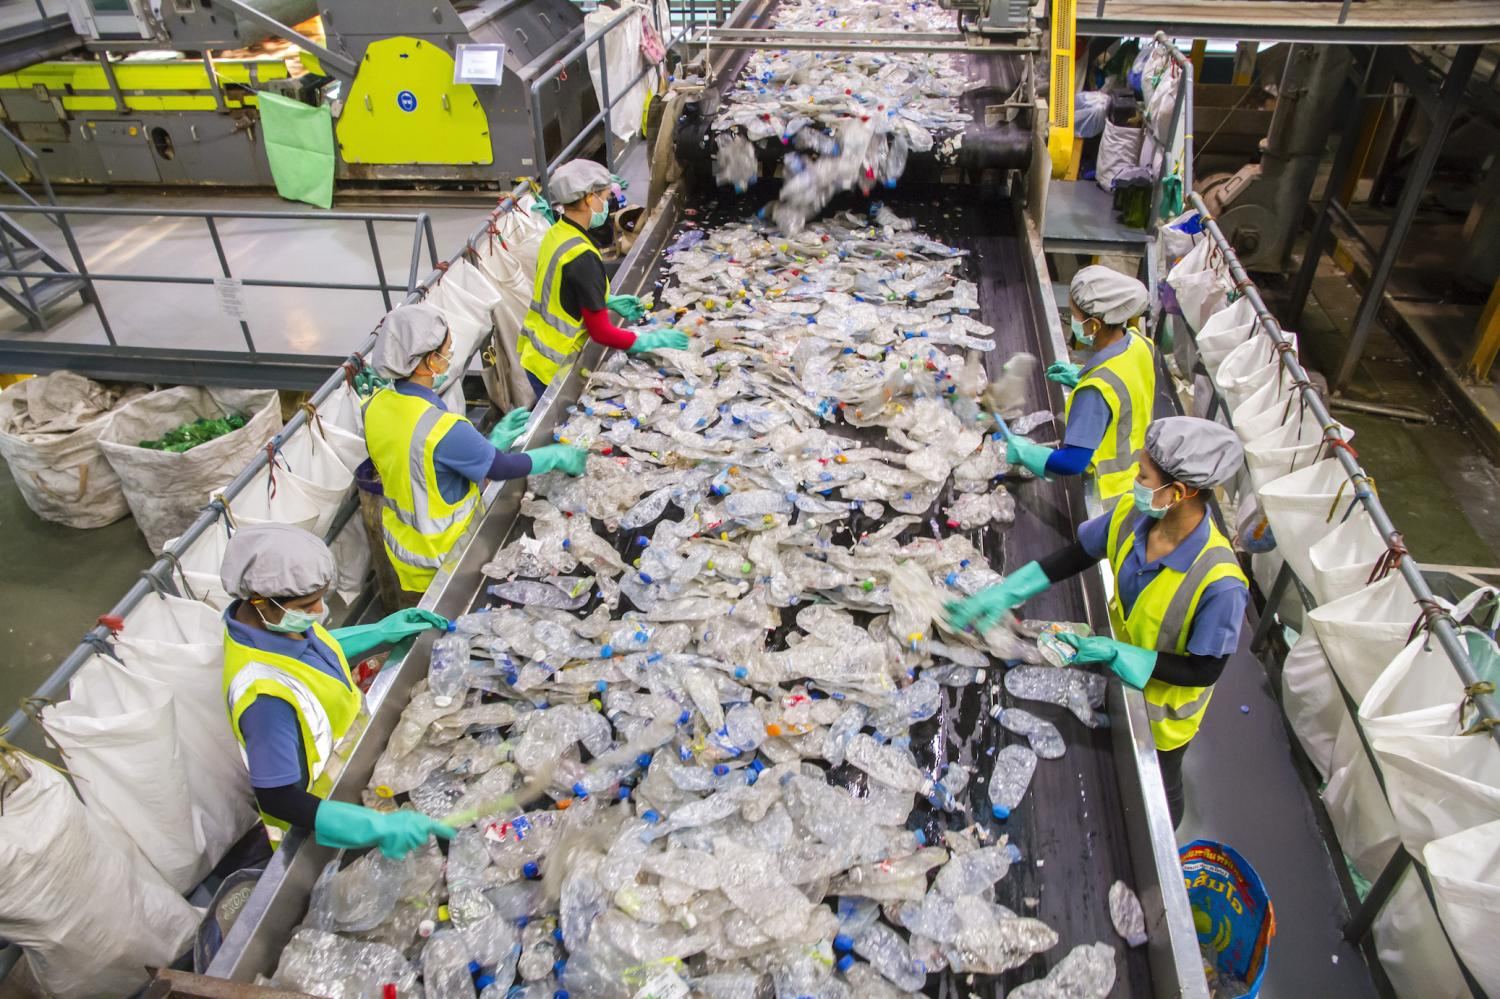 Workers sort post-consumer PET bottles at the Indorama Ventures plastic recycling factory in Nakhon Pathom. A total of 1.65 billion PET bottles were recycled into PET plastic pellets over five years.